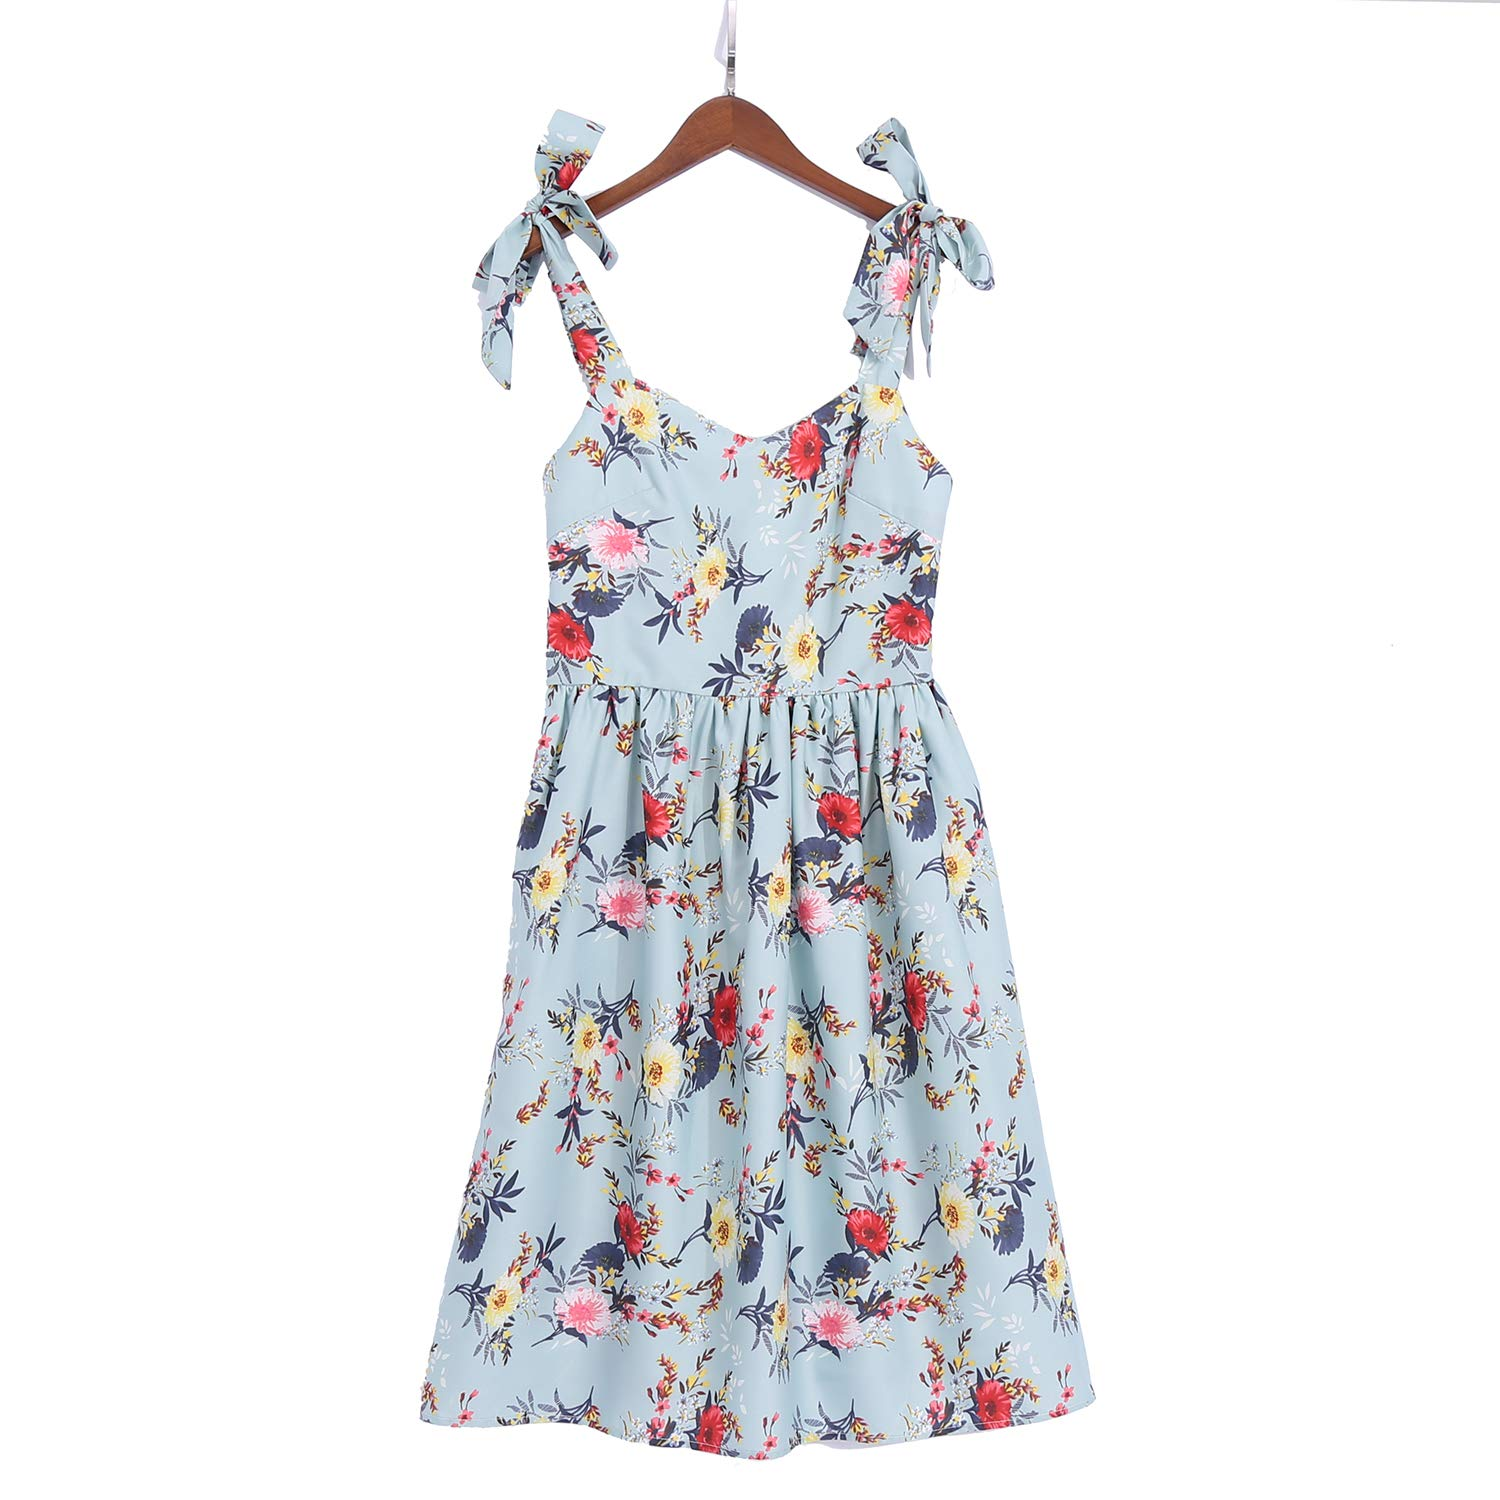 PopReal Mommy and Me Floral Printed Dresses Shoulder Straps Bowknot Chiffon Sleeveless Beach Mini Sundress